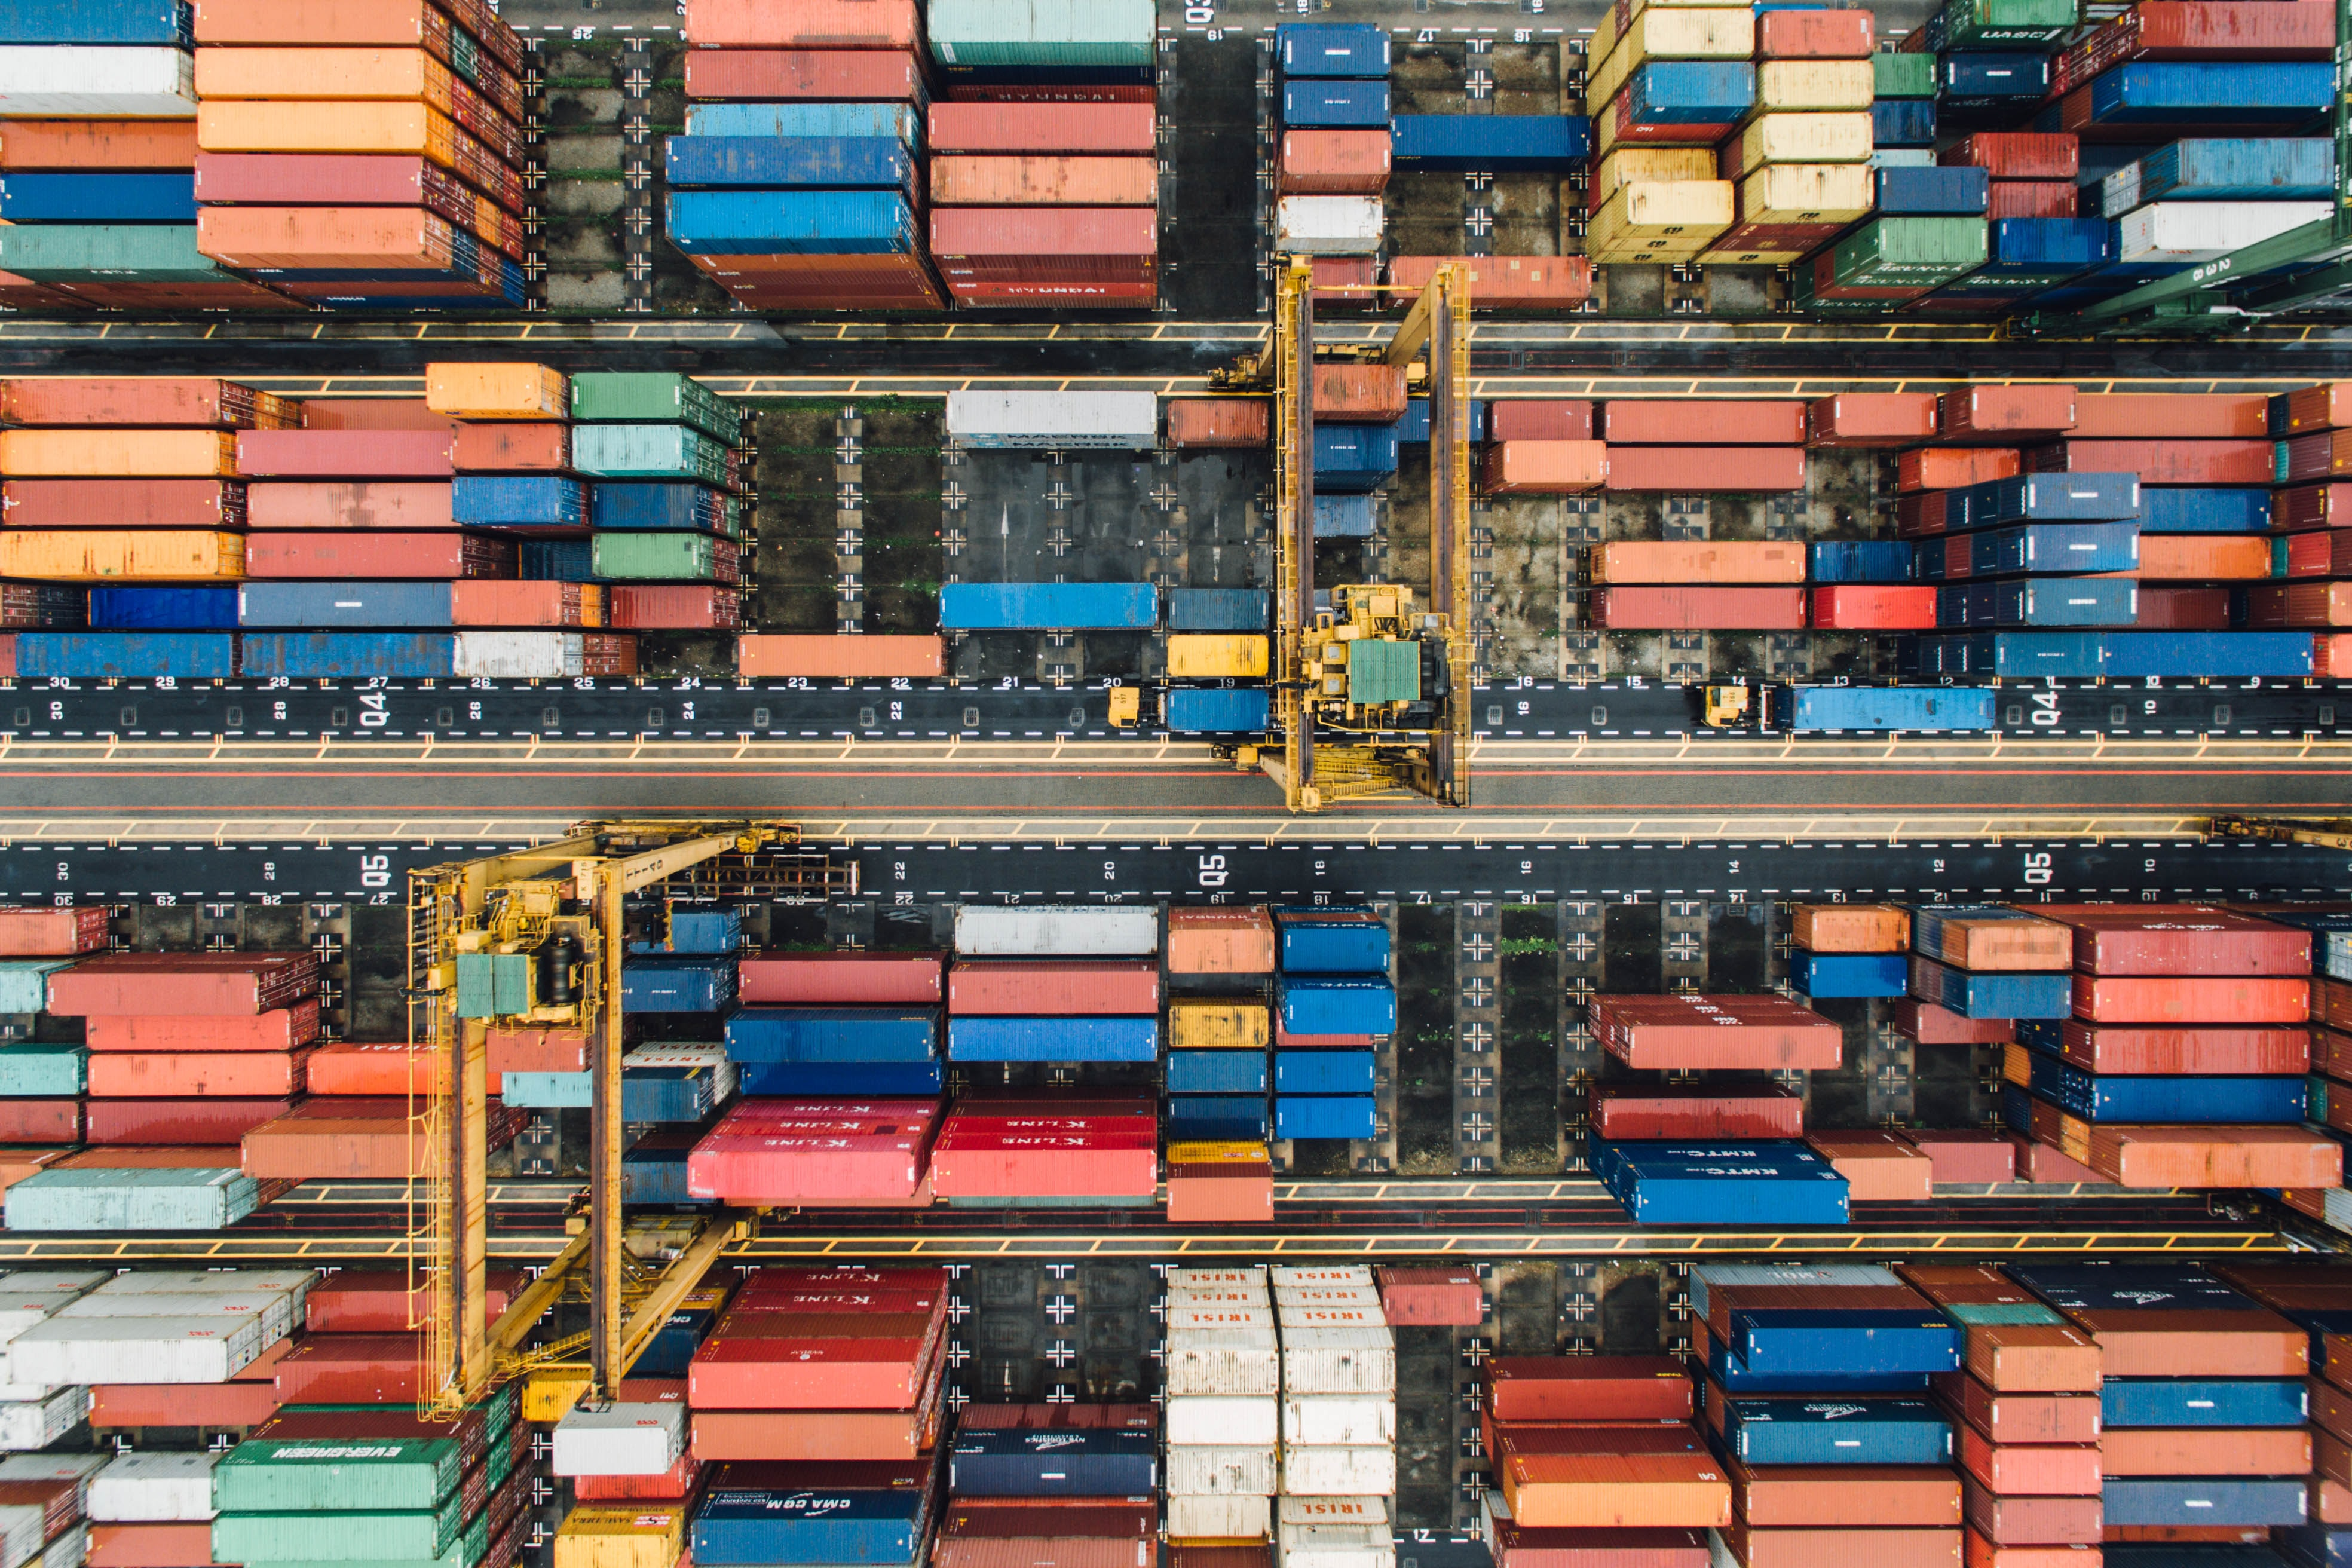 Read more about the article BlueBox as part of Logistics 4.0